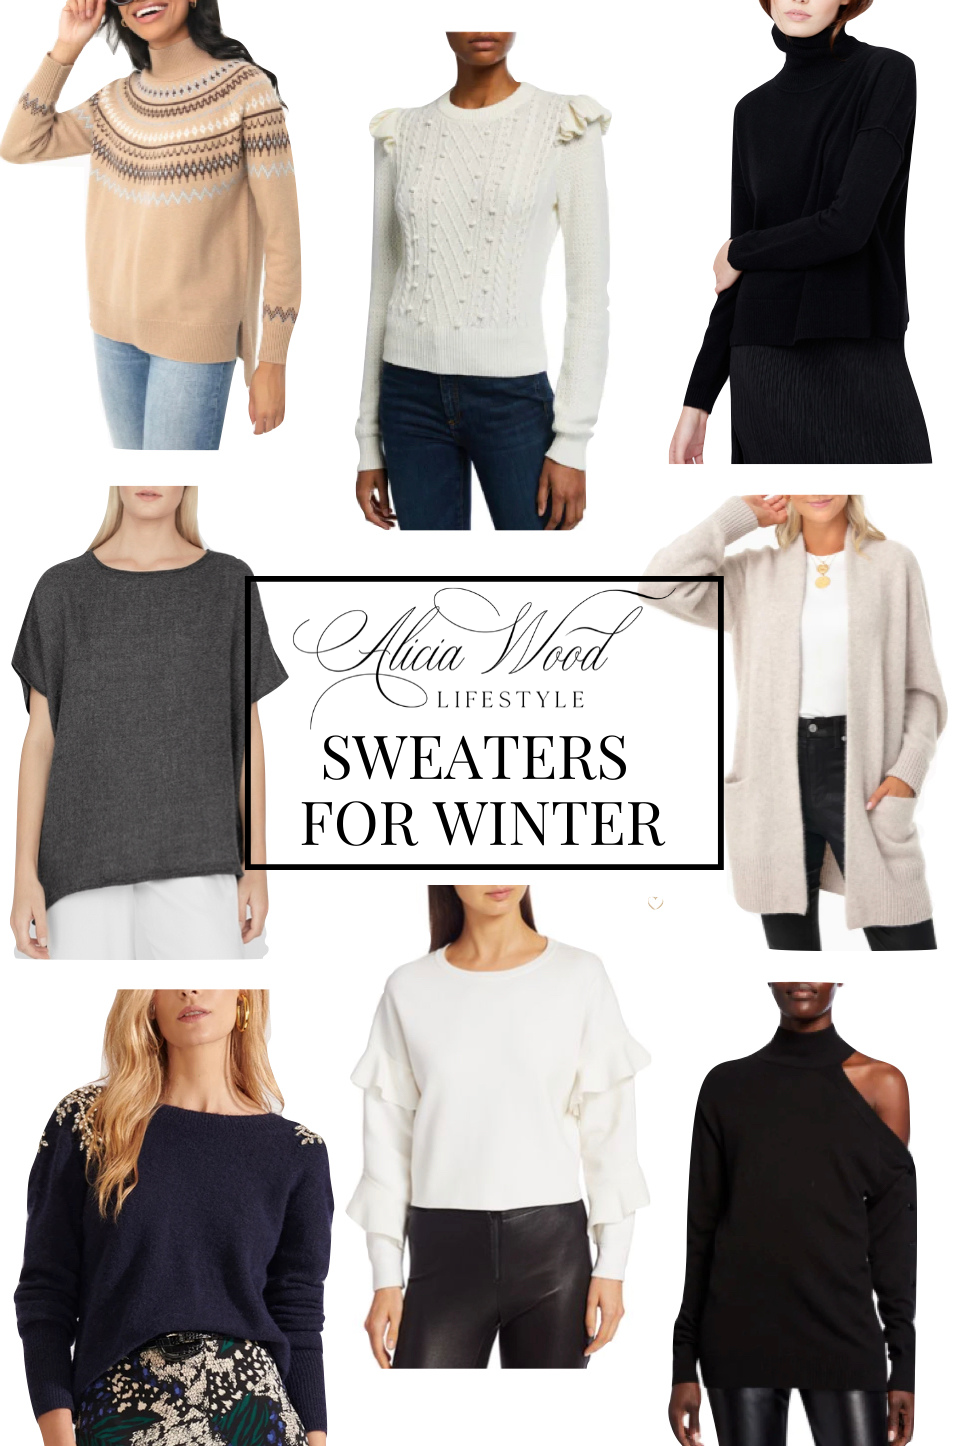 21 Sweaters For Winter